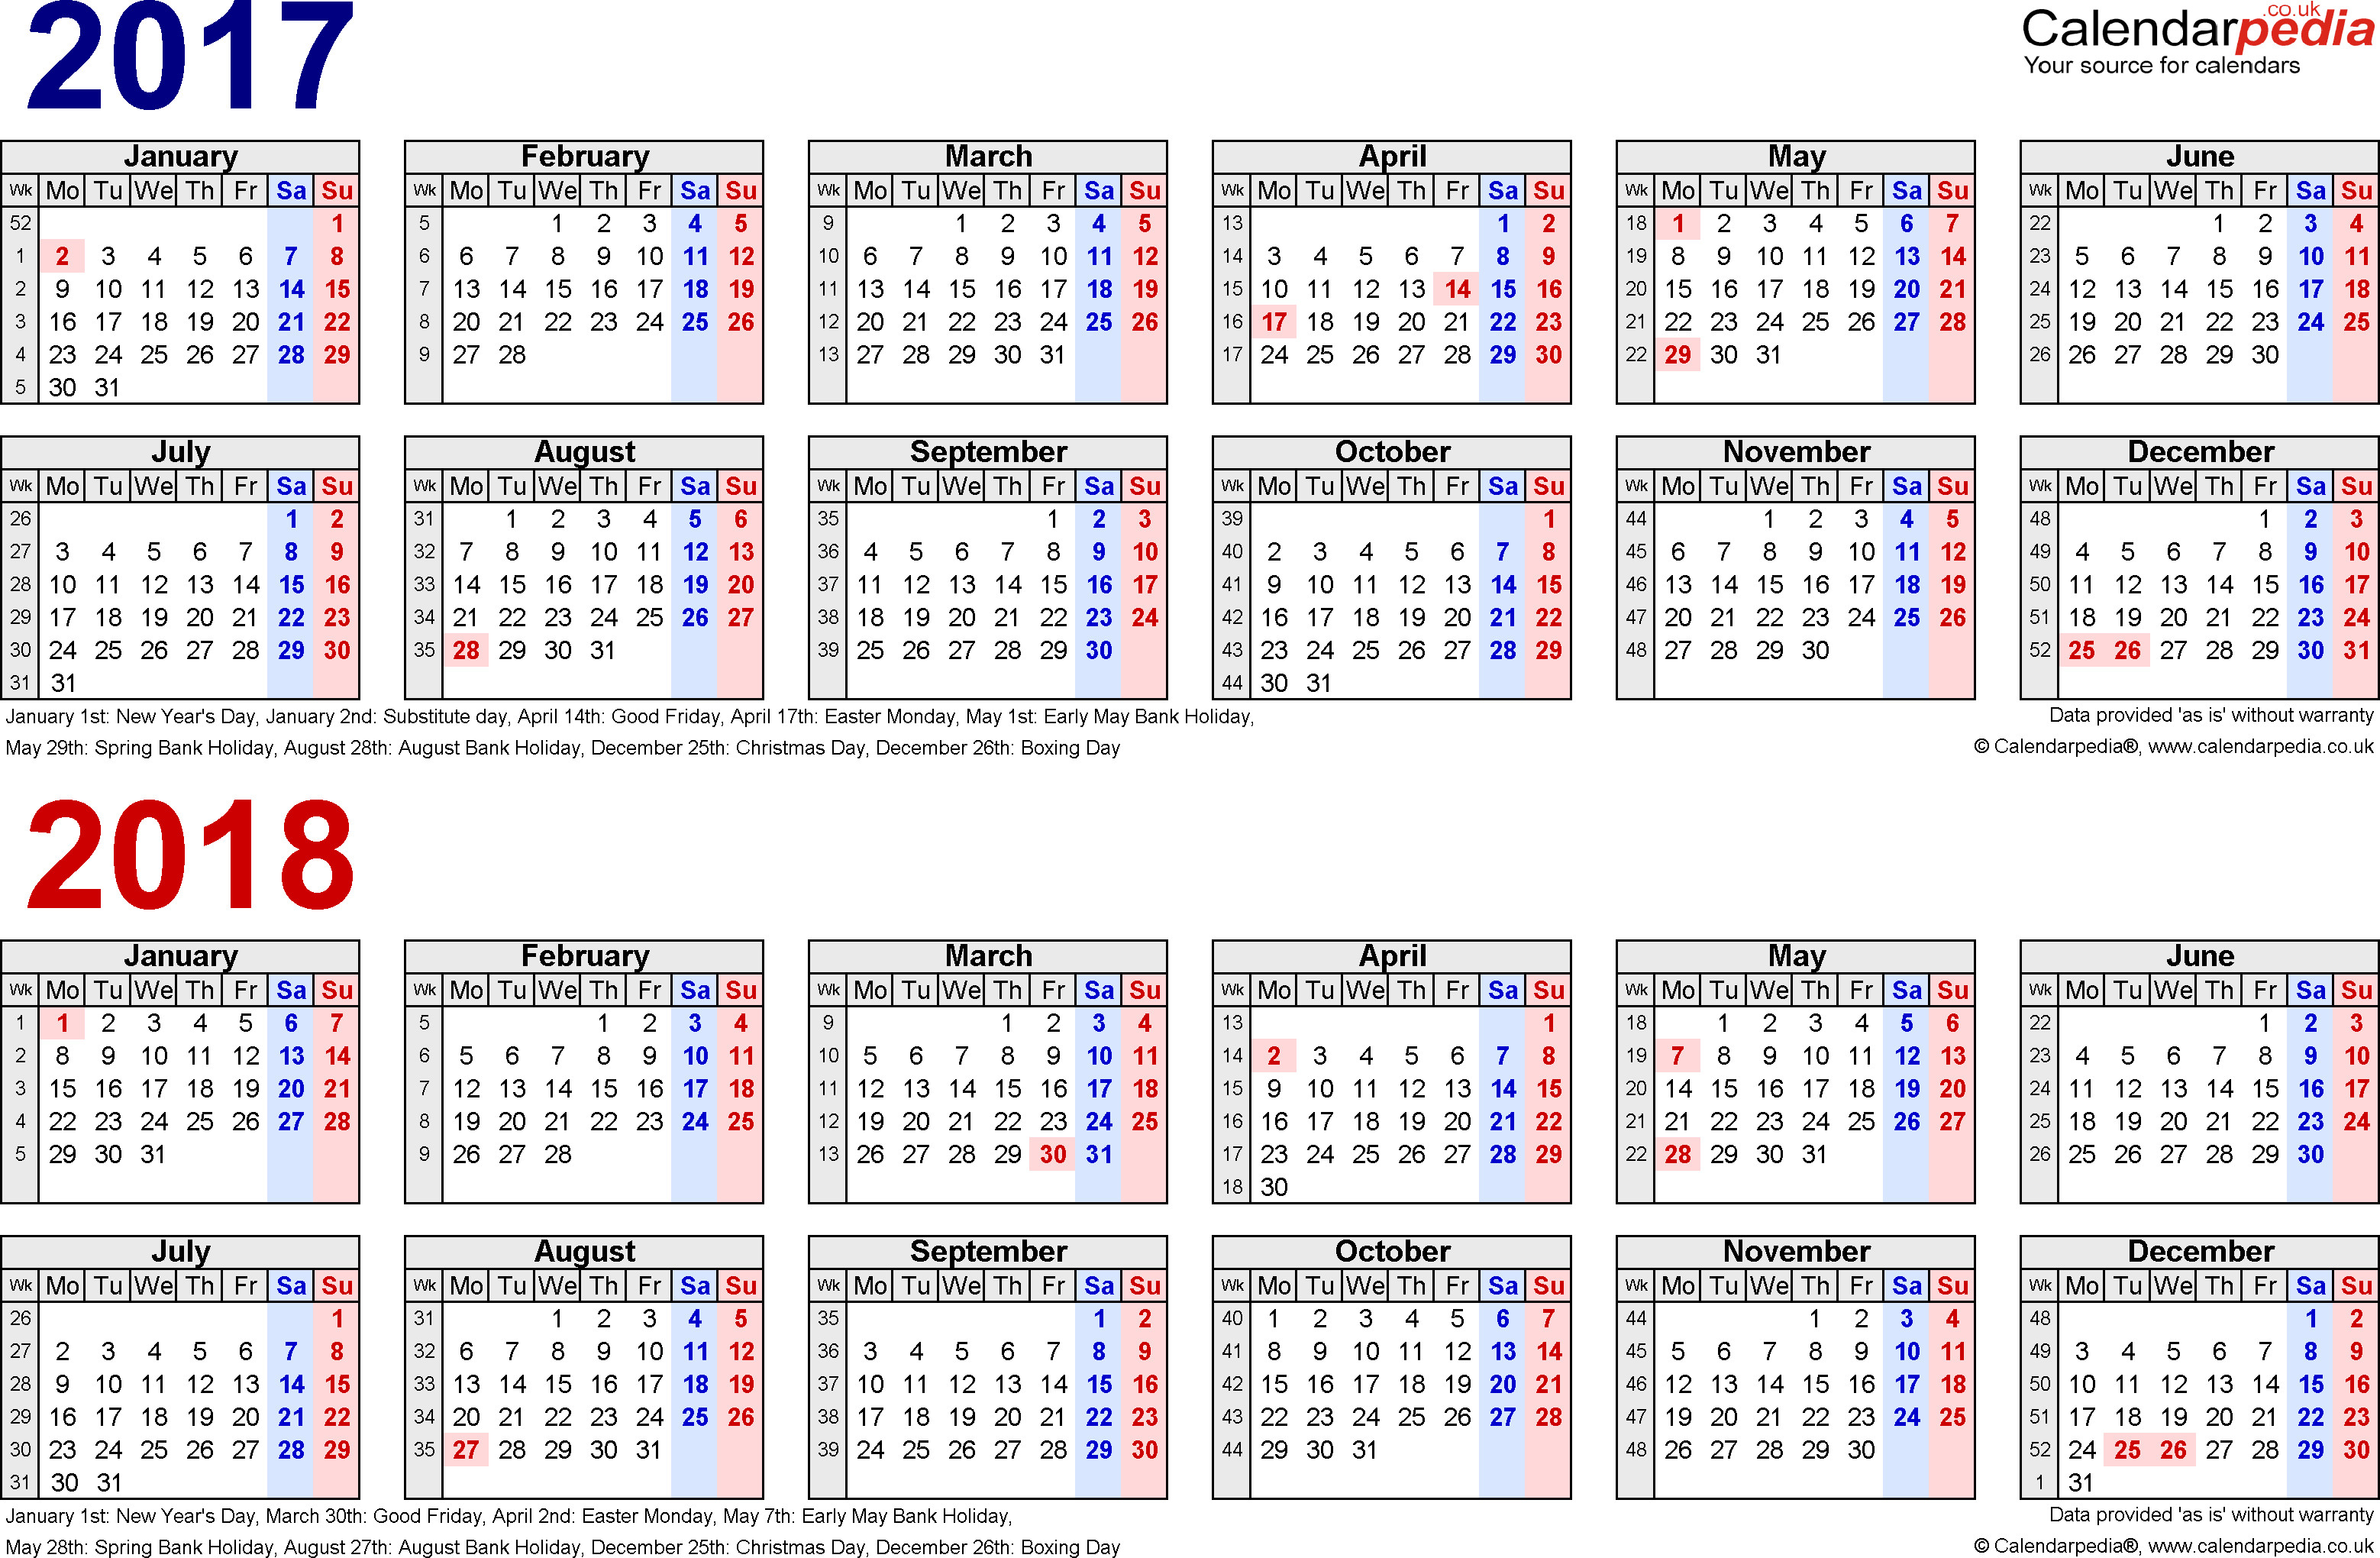 47 Biweekly Payroll Calendar 2018 Ch8S – Anythinghere with regard to Uc Berkeley Biweekly Pay Calendar 2020